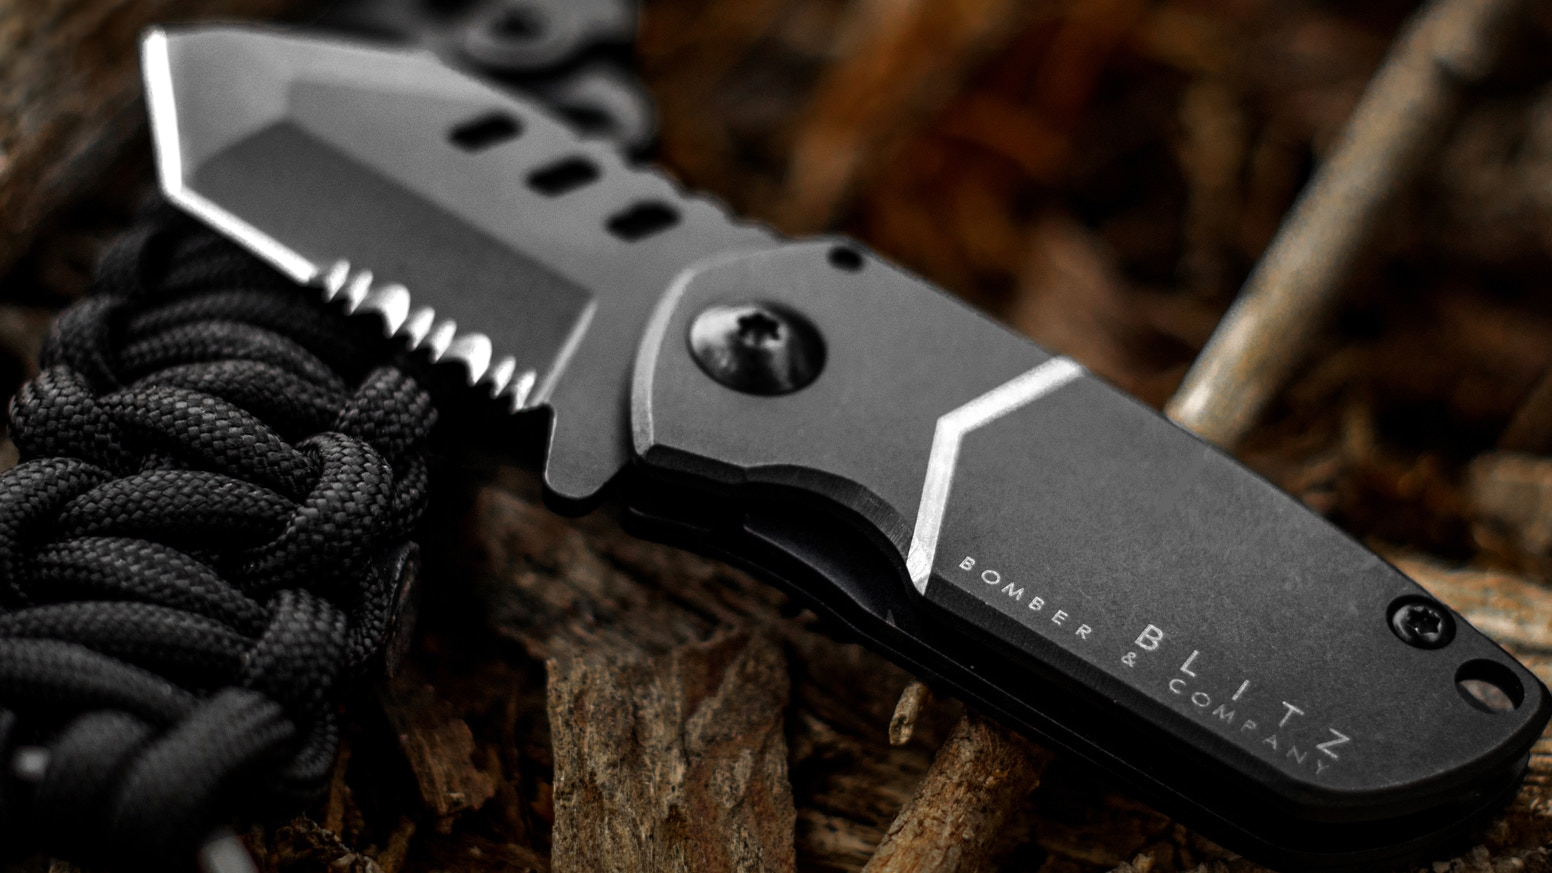 Best Small Pocket Knives for Everyday Carry - Lifetime Warranty - Bomber & Company engineers urban survival & paracord gear.